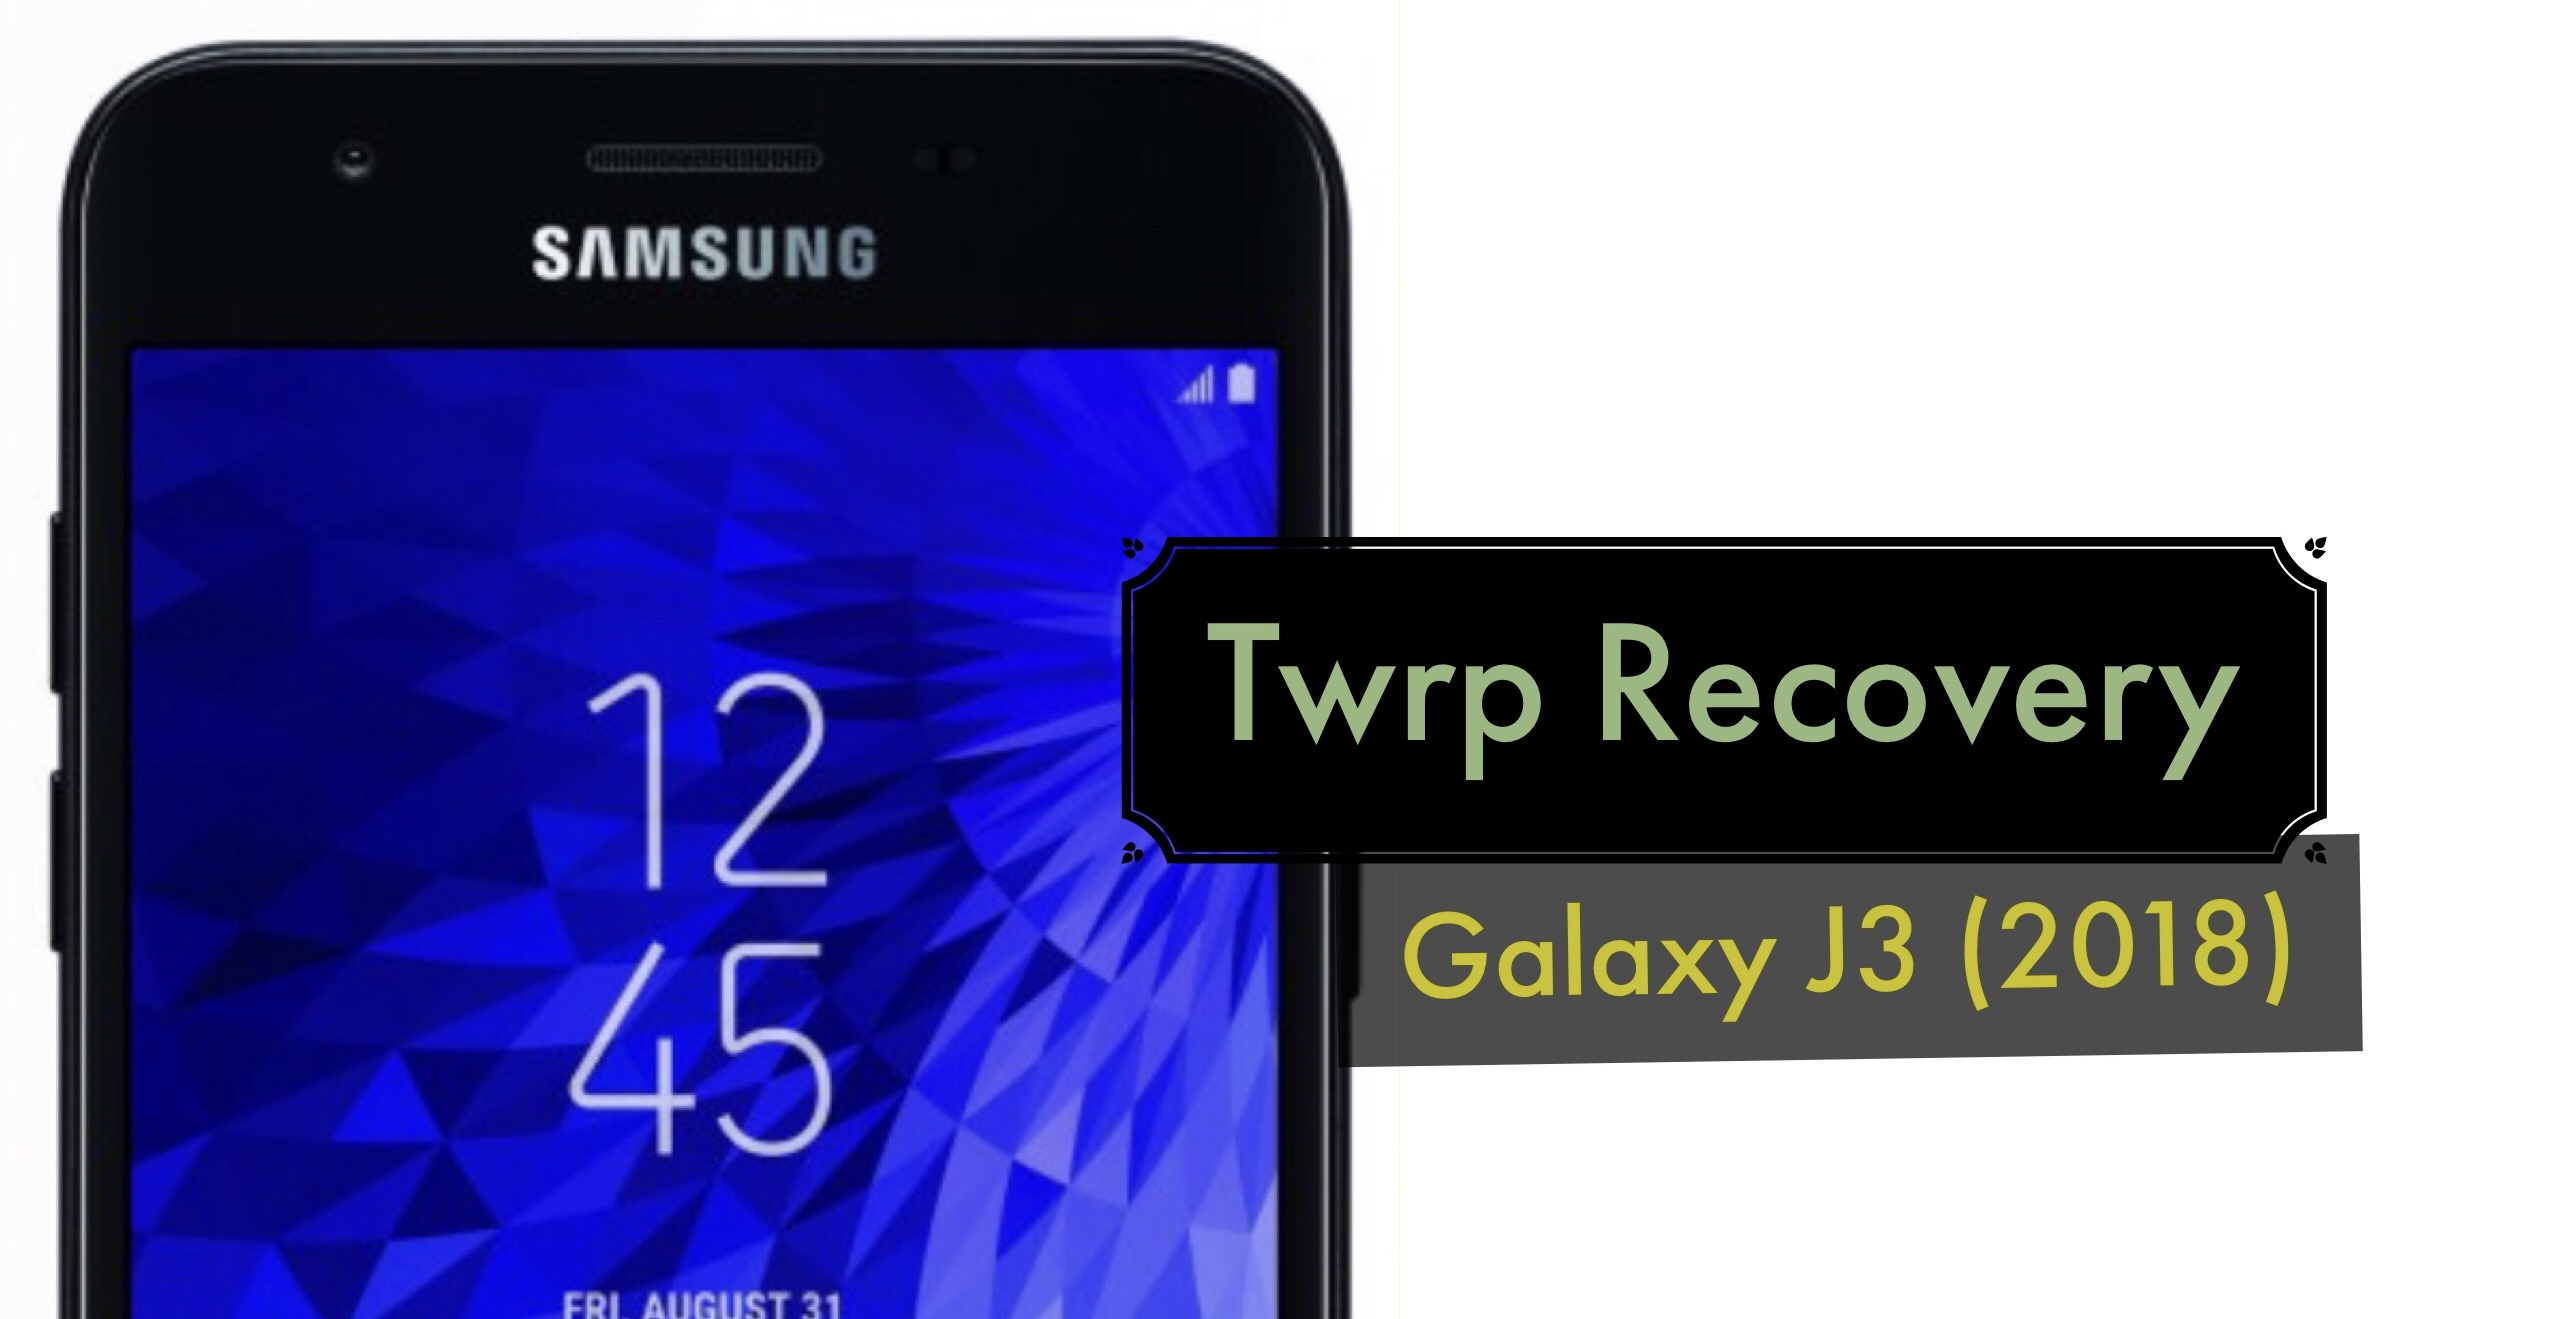 How to Install TWRP Recovery on Galaxy J3 (2018): Easy Tutorial